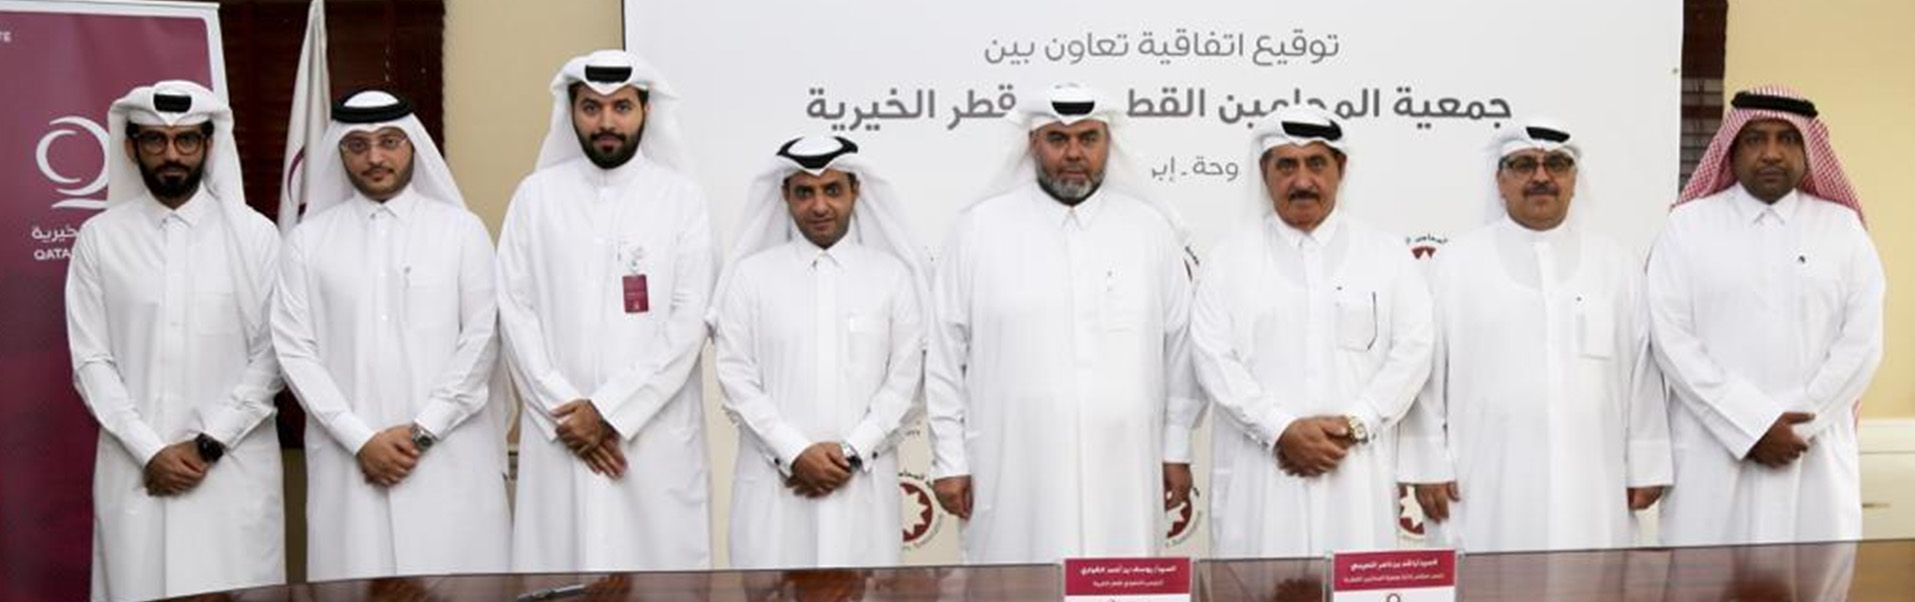 Qatar Charity (QC) has inked a cooperation agreement with